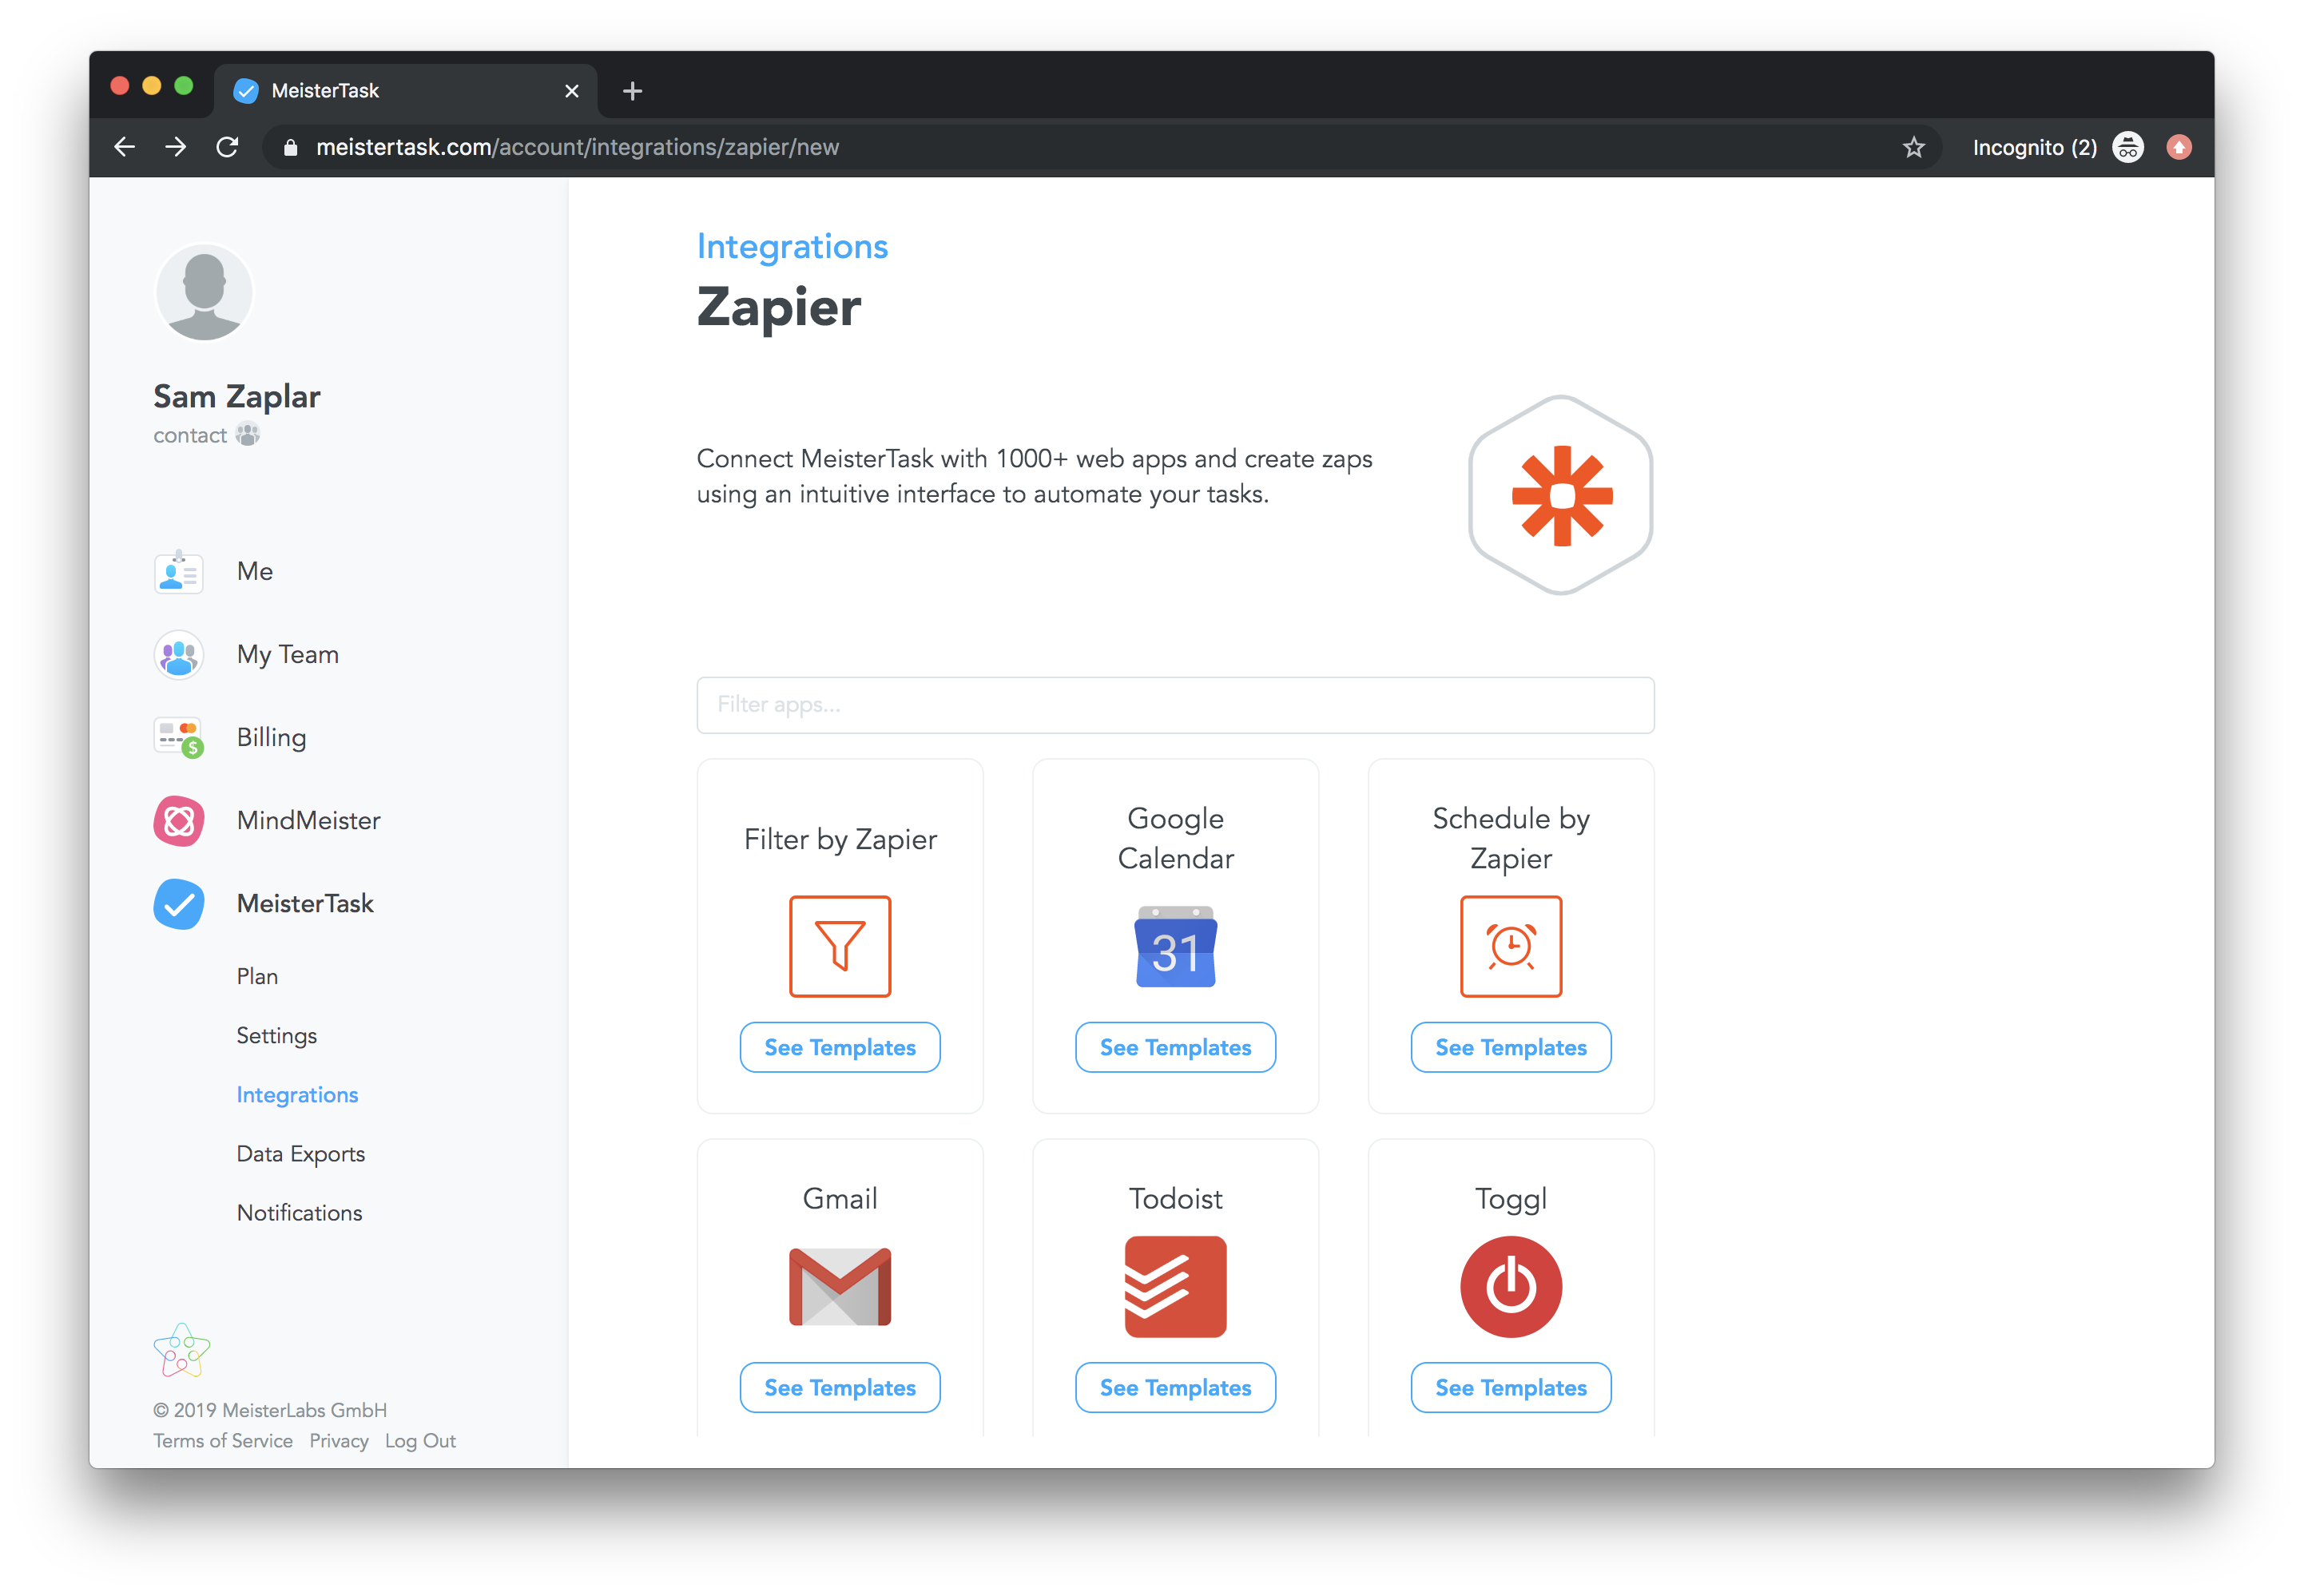 MeisterTask's integration library powered by Zapier